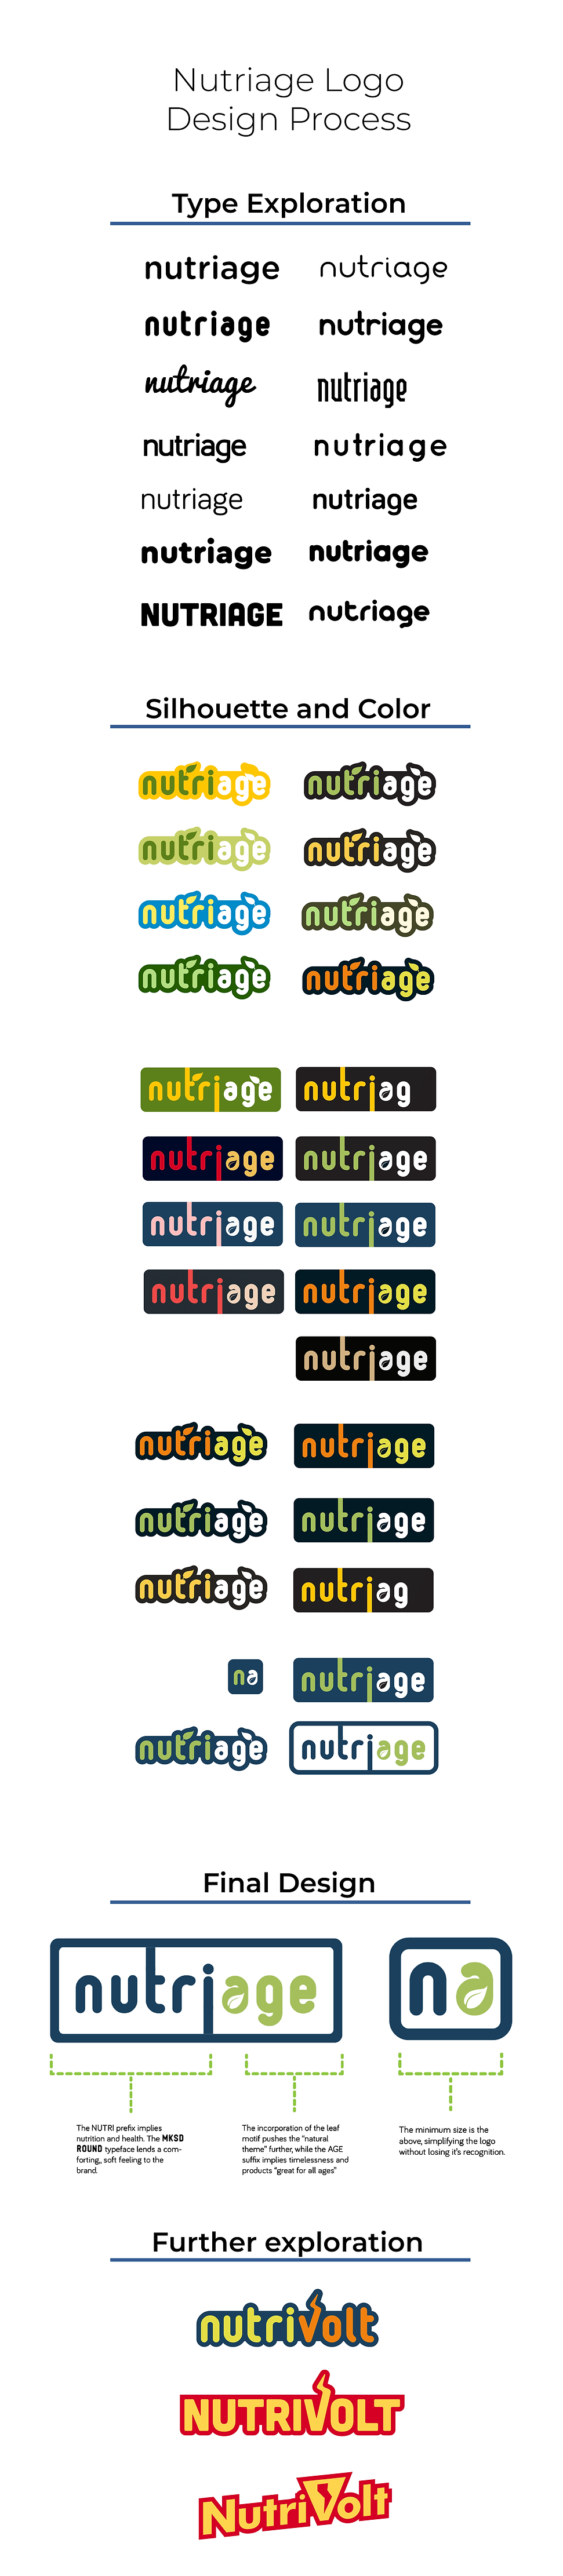 nutriage logo process-1.png